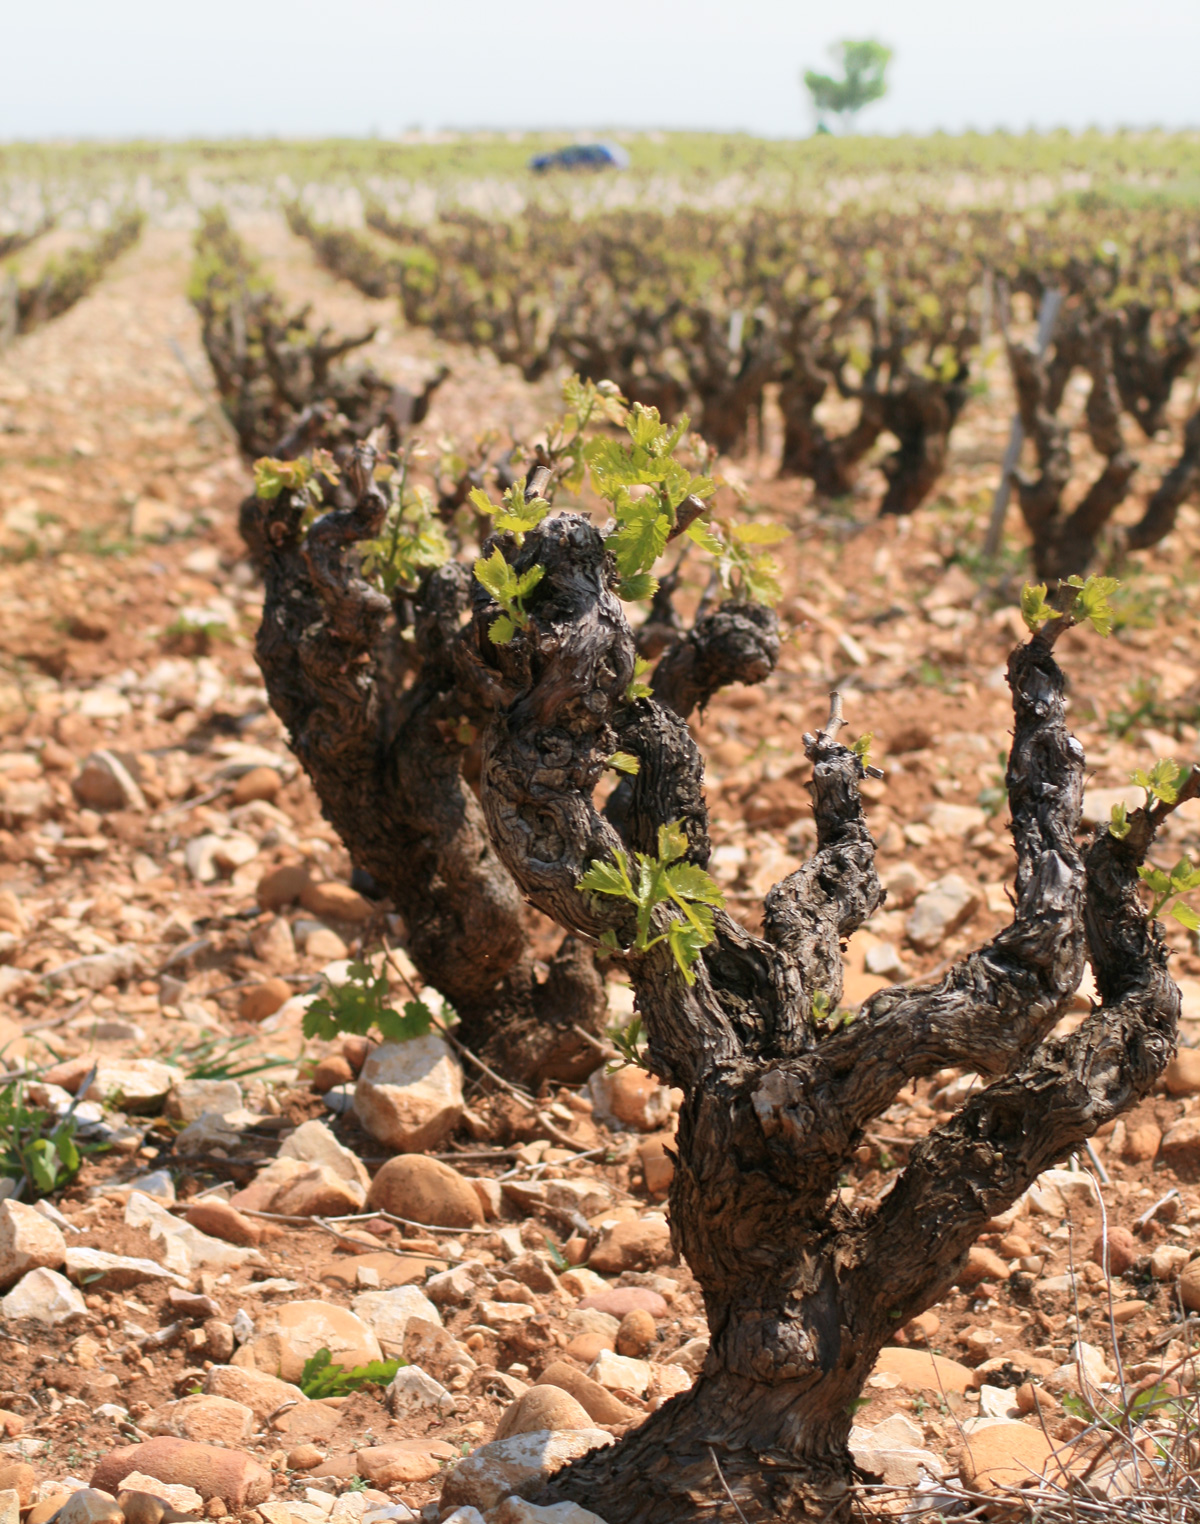 jean-louis_zimmerman-chateauneuf-du-pape-vineyards-2009